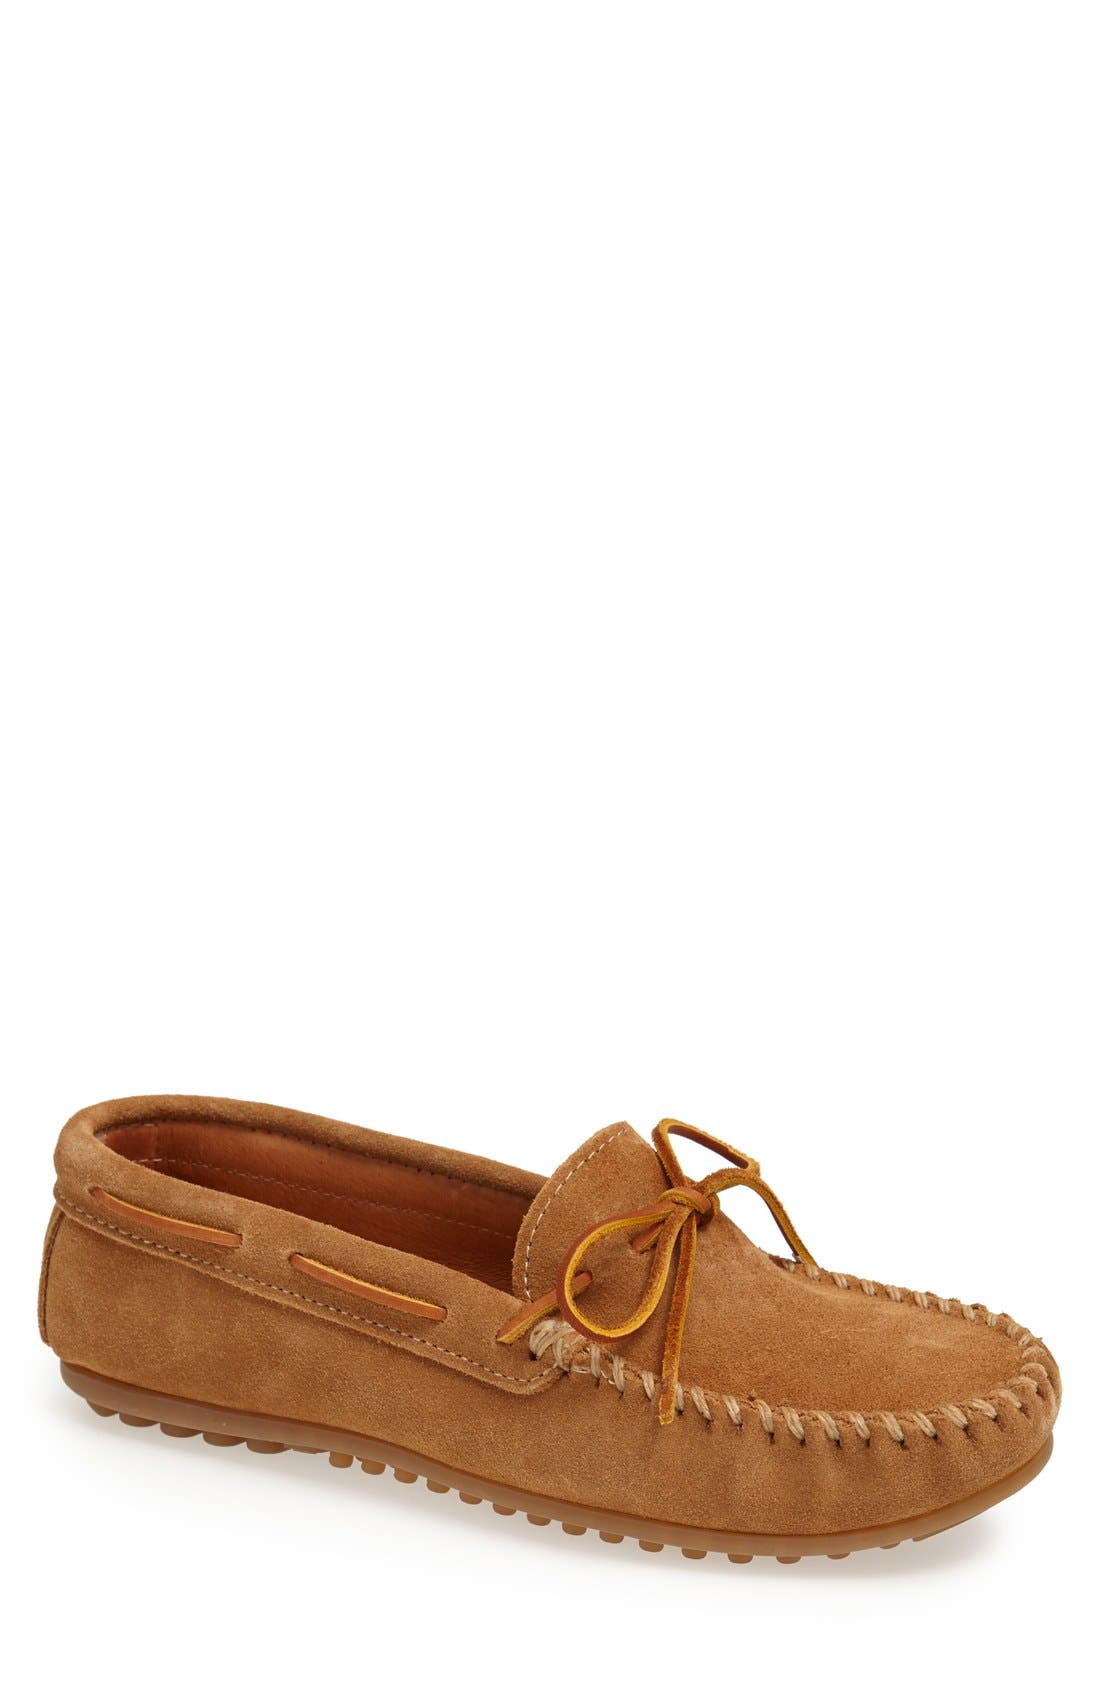 Alternate Image 1 Selected - Minnetonka Suede Driving Shoe